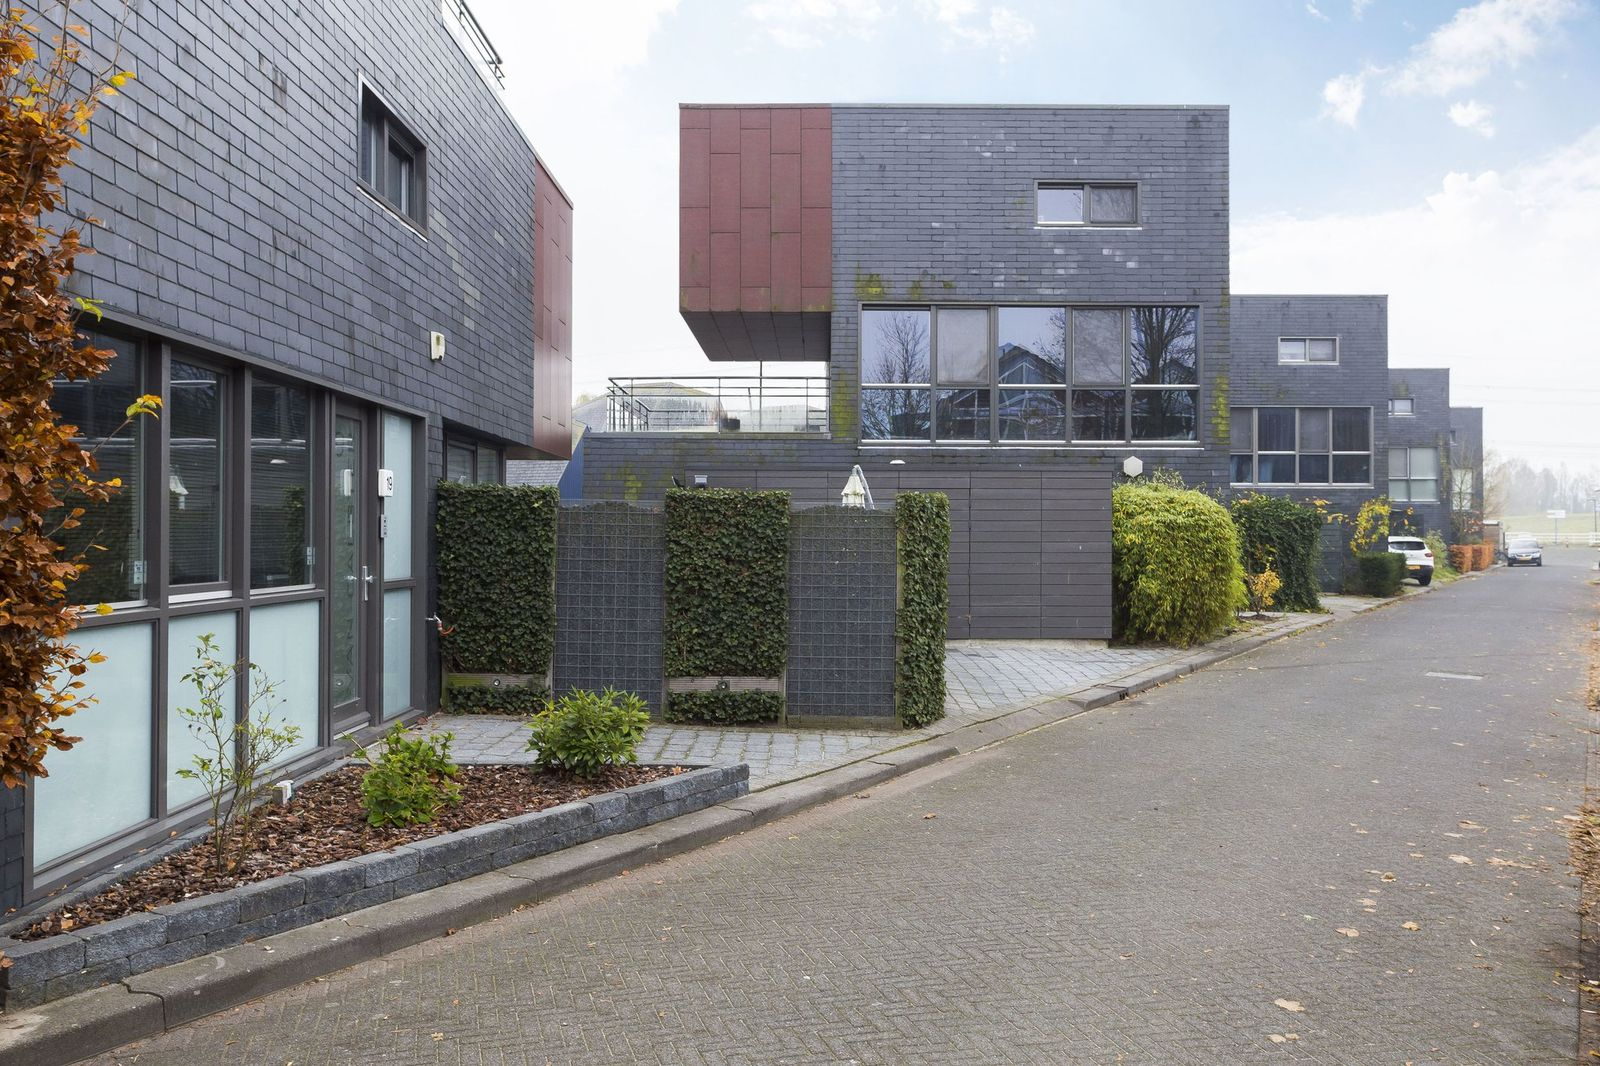 Curacaostraat 19, Almere